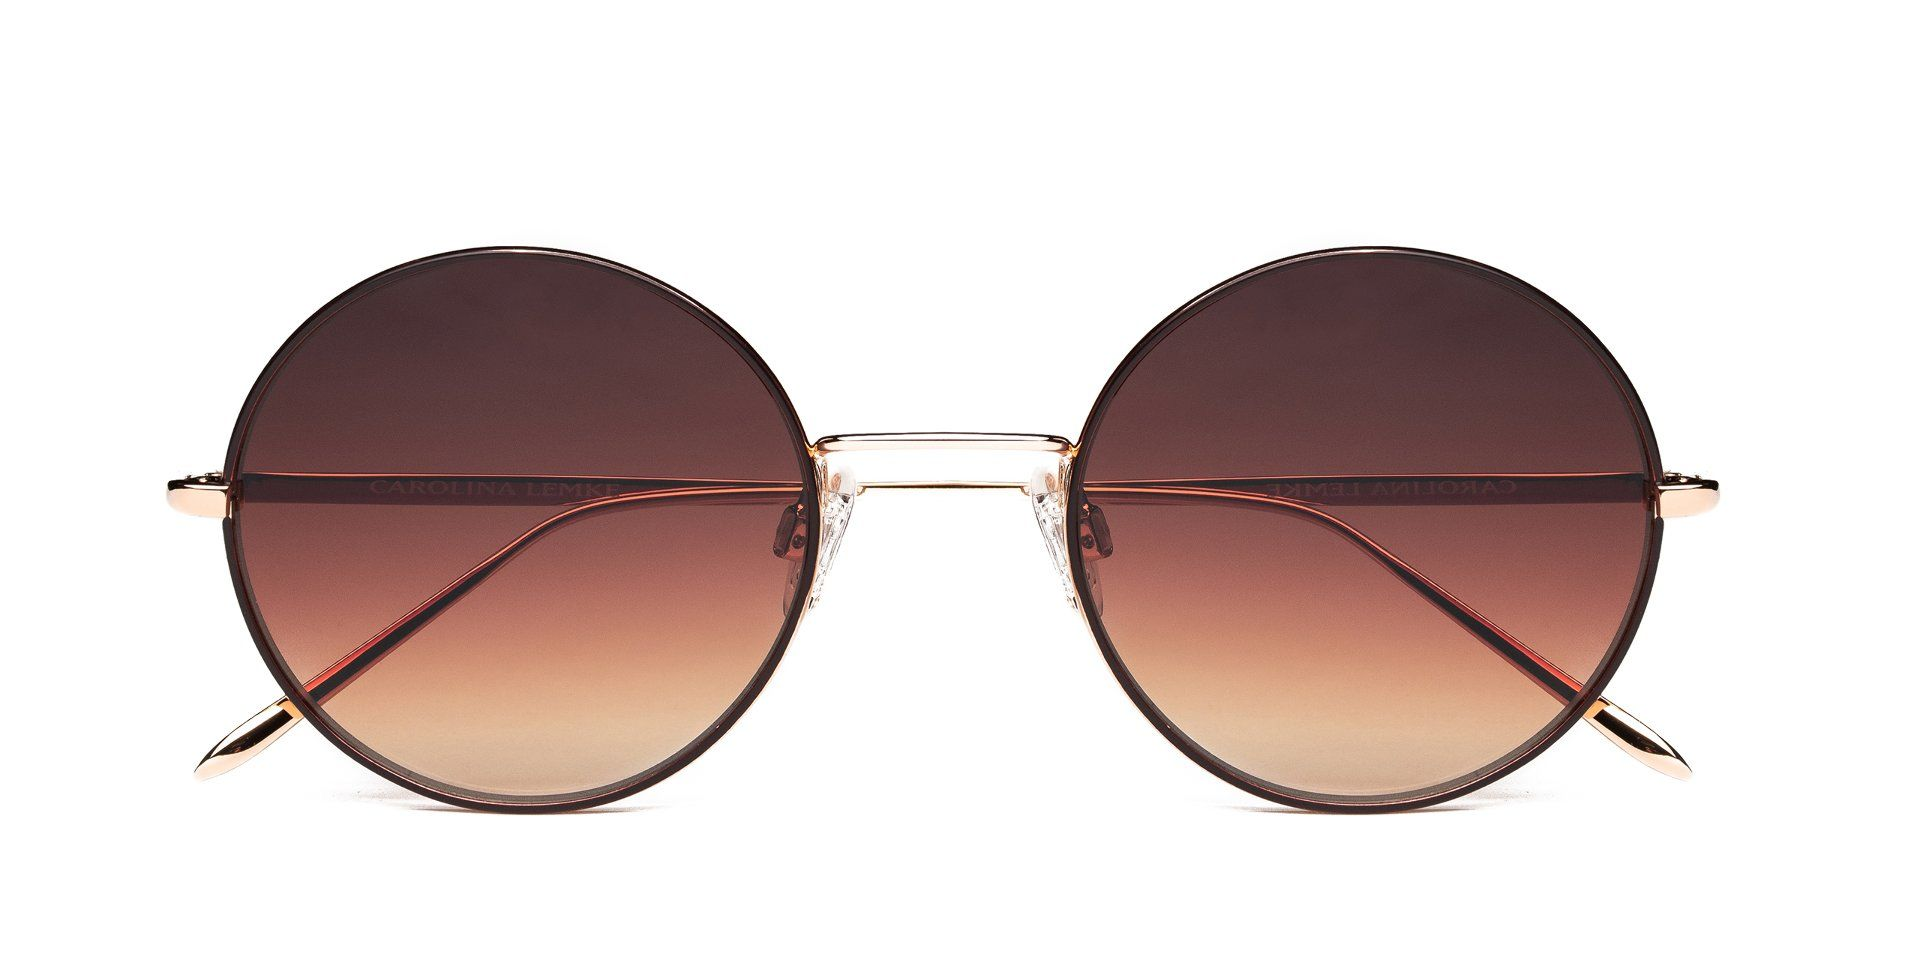 FRAME Matt Coffee Gold LENS Gradient Brown